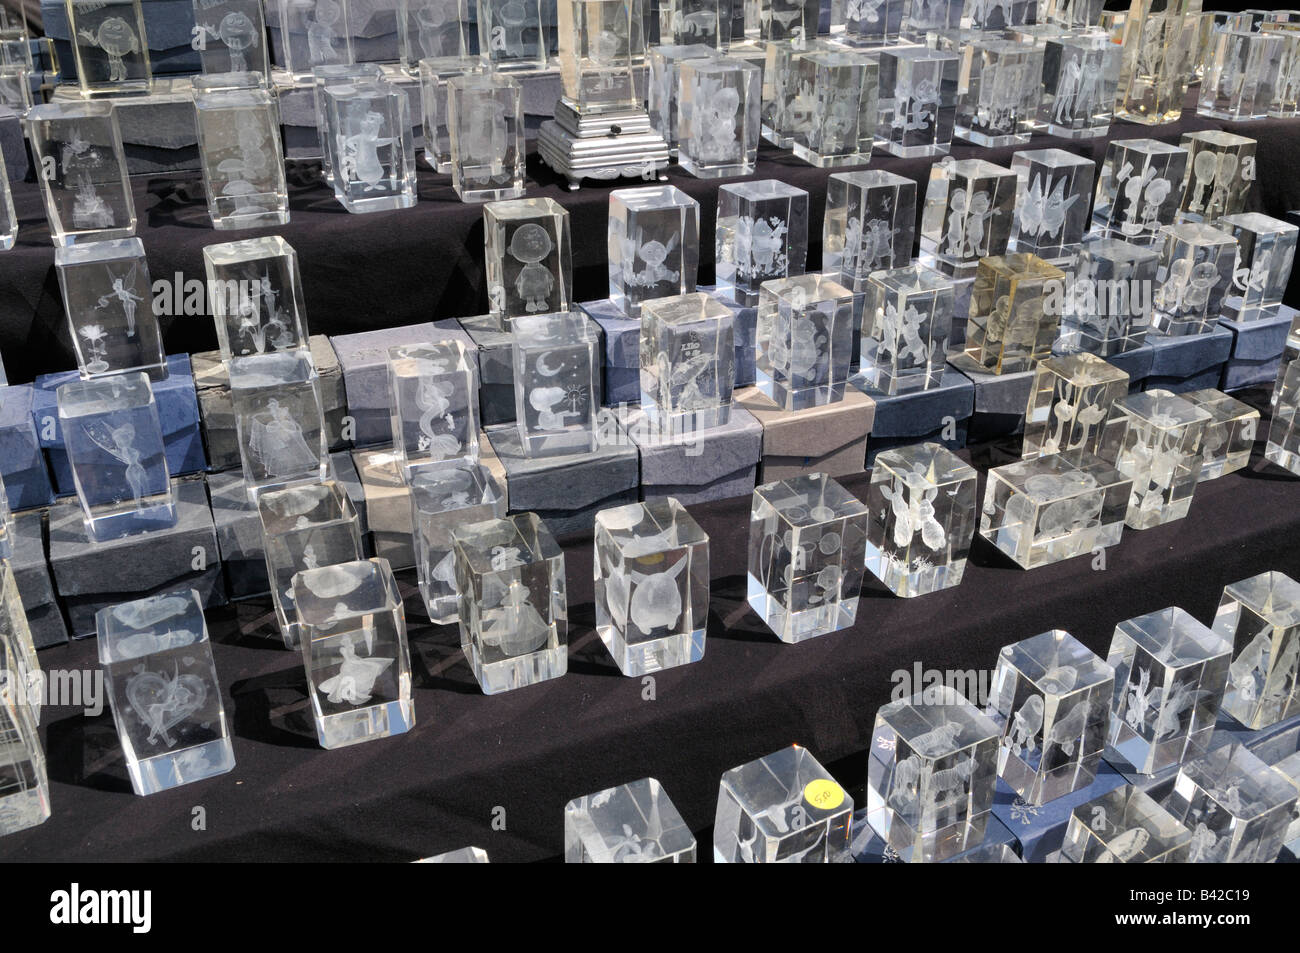 Miniature three dimensional portrait etchings inside cube like glass - Stock Image